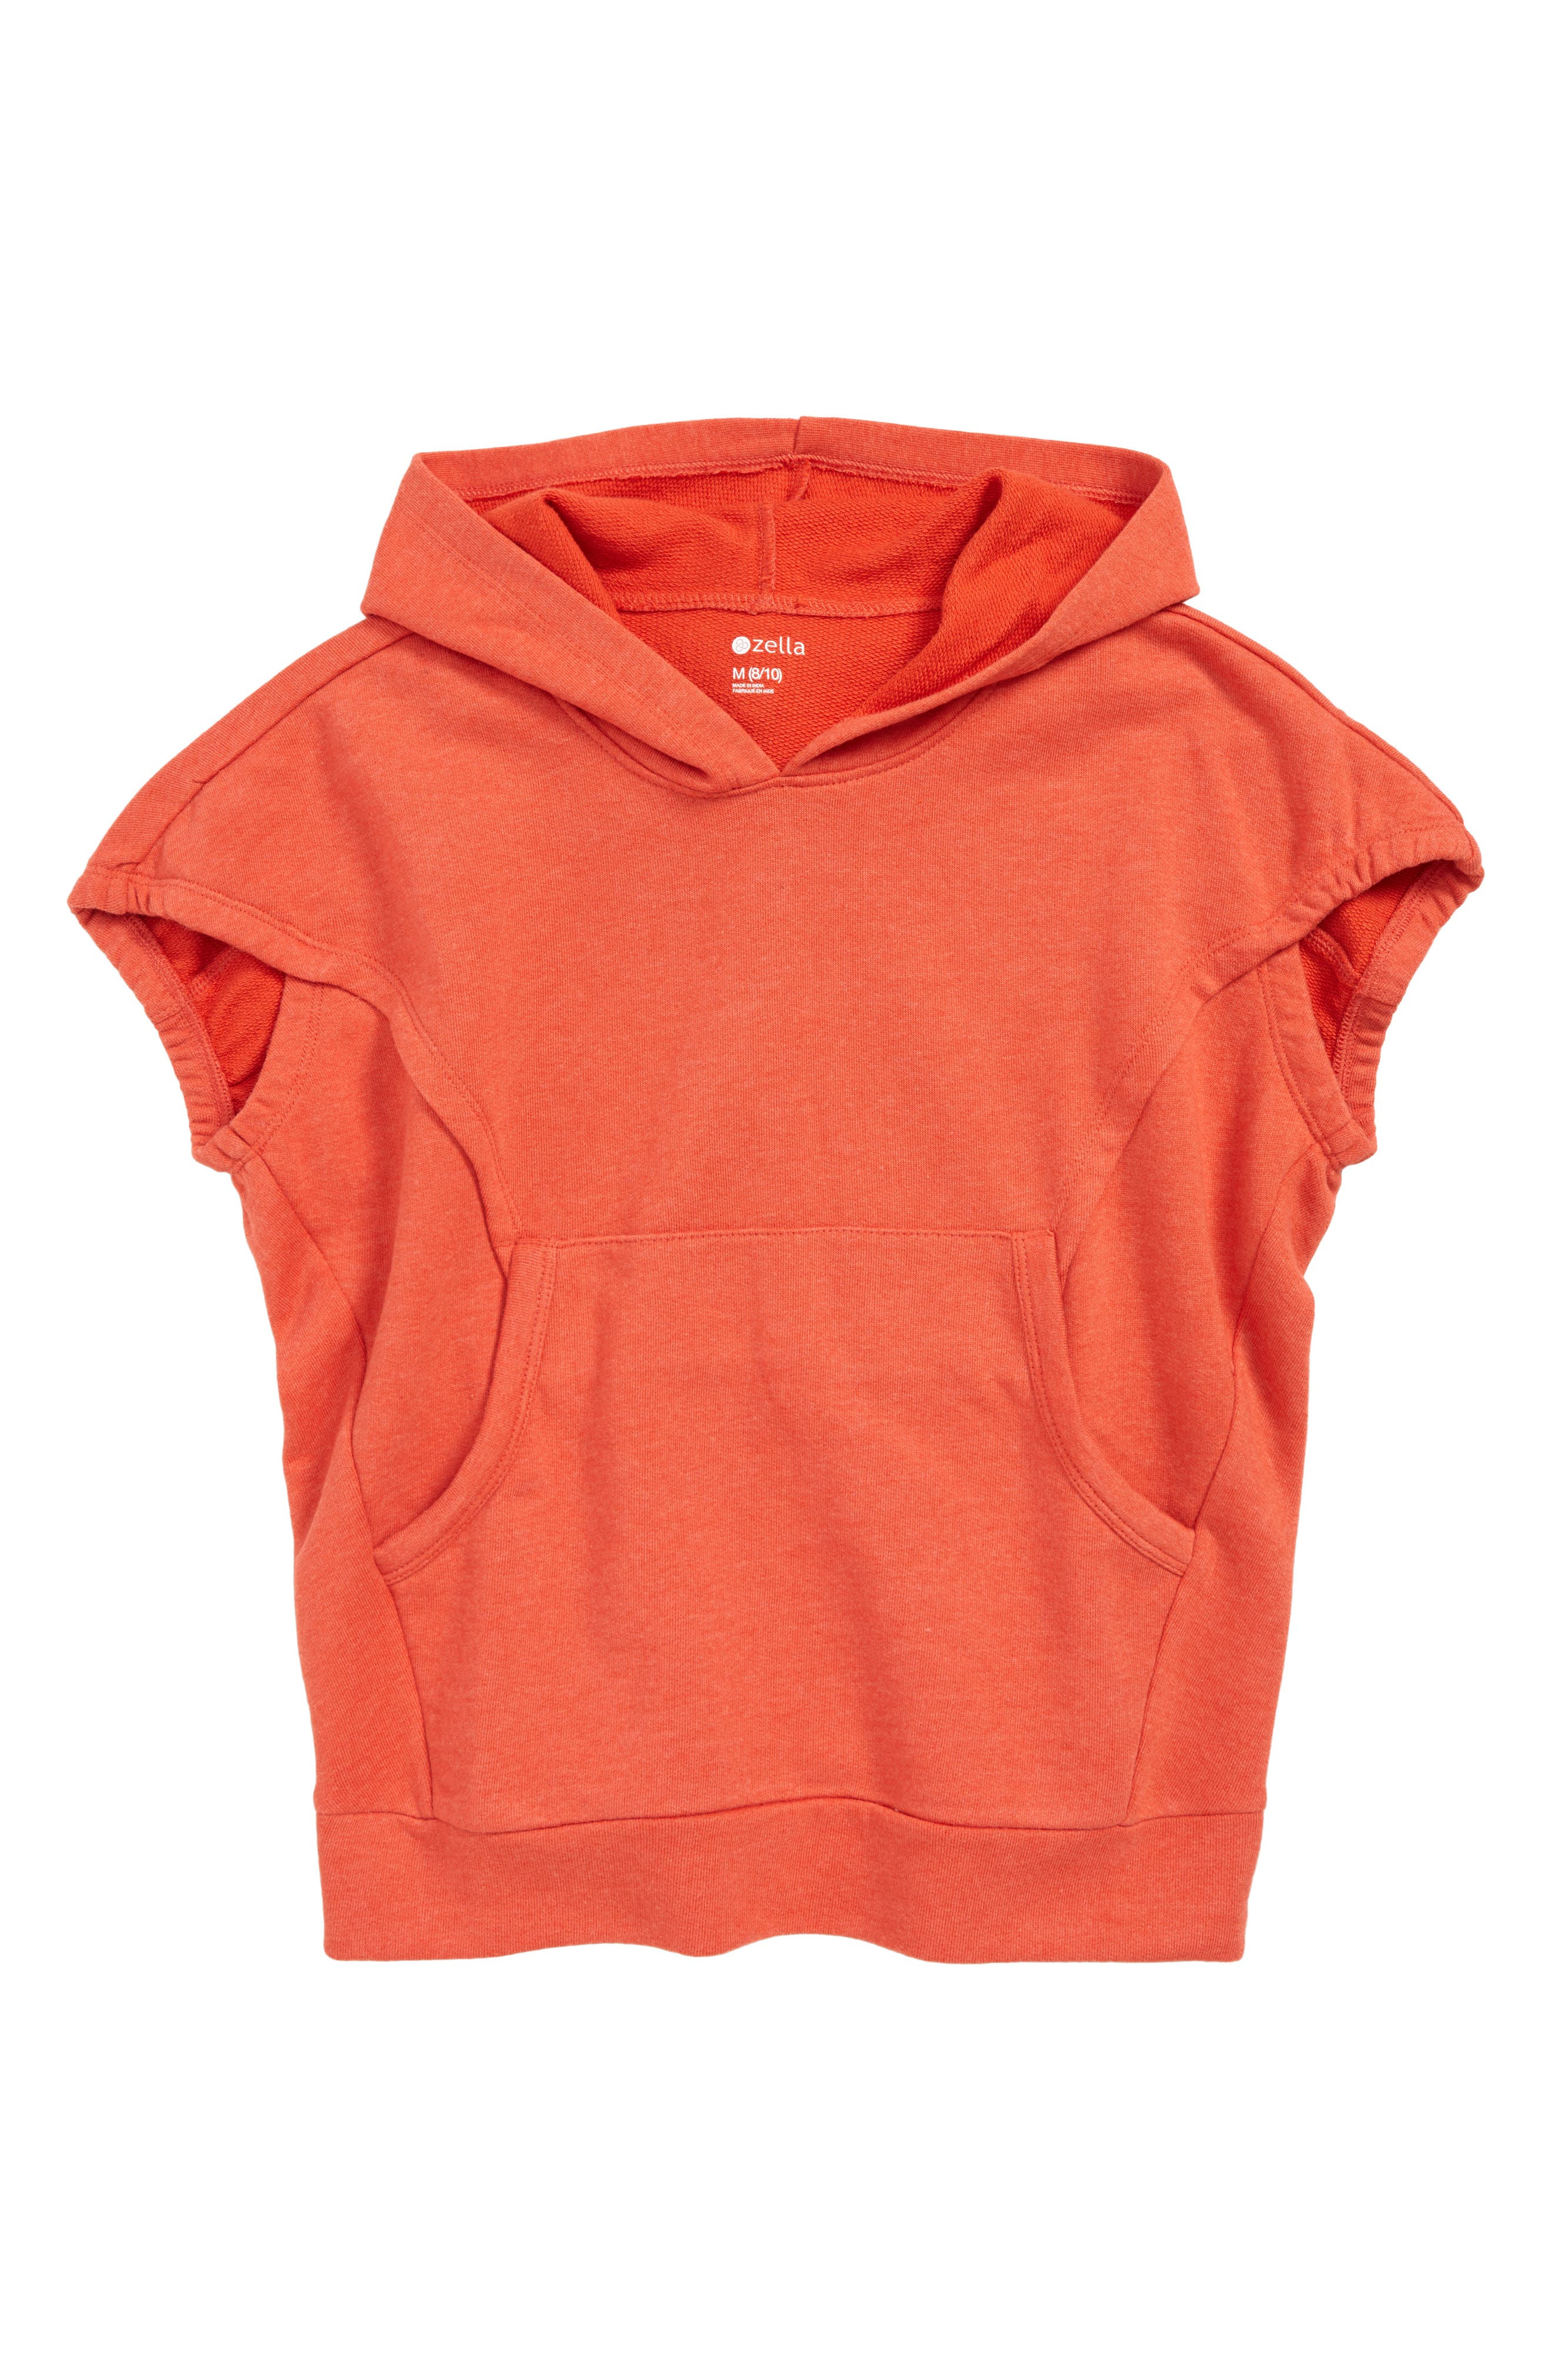 ZELLA GIRL, Voyage Hoodie, Main thumbnail 1, color, RED POPPY